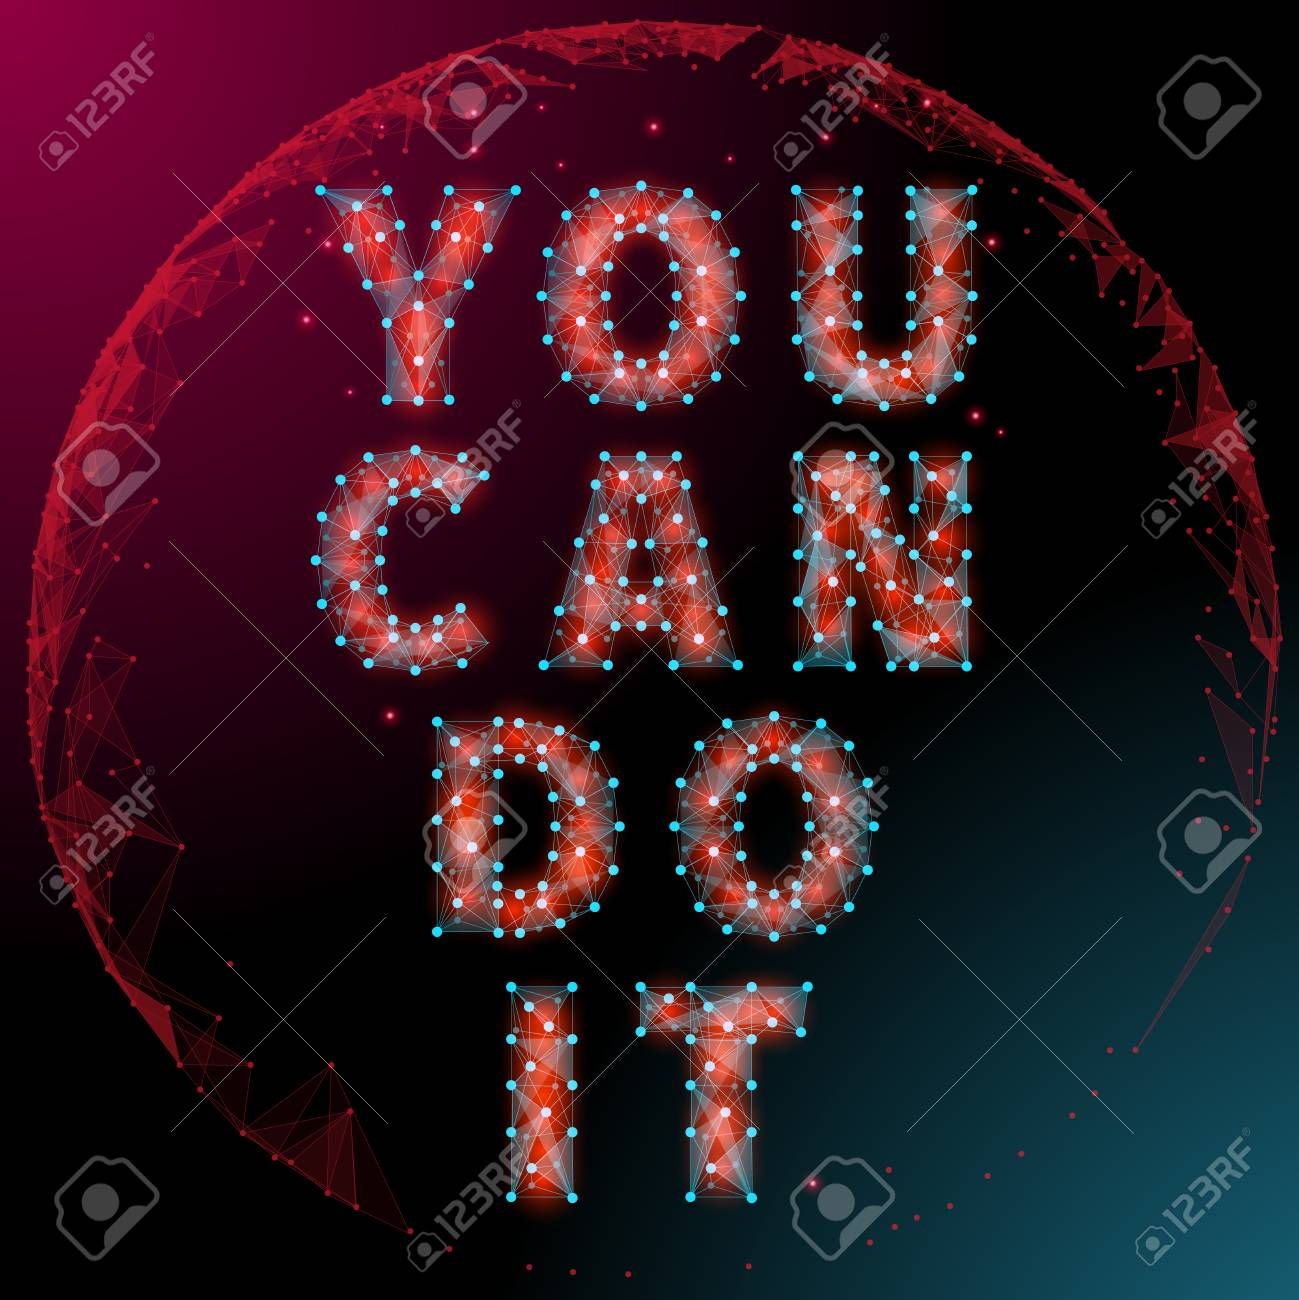 Abstract Motivational Poster Polygon Style With A Globe In The